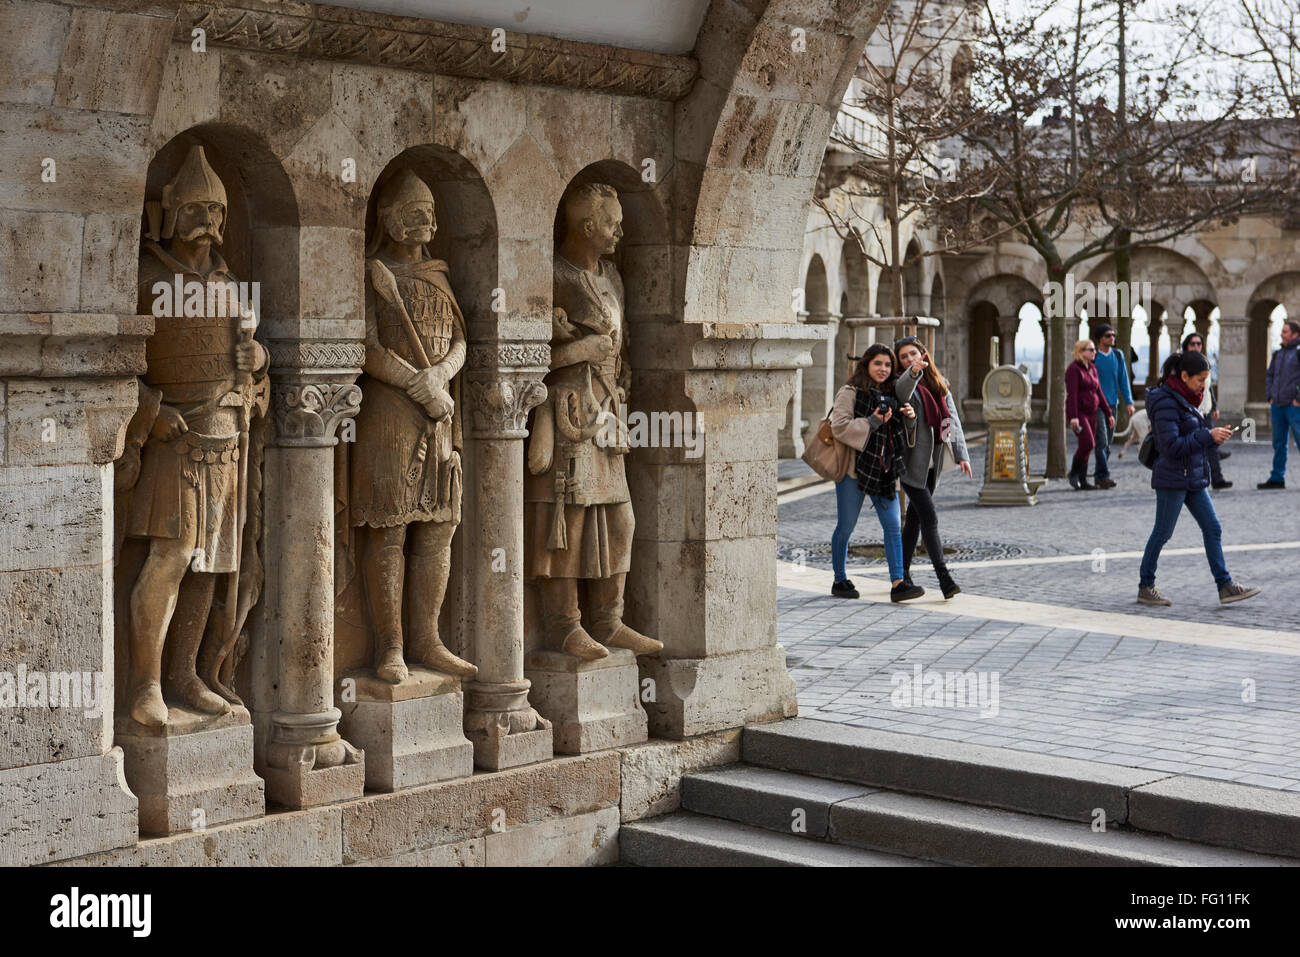 BUDAPEST, HUNGARY - FEBRUARY 02: Stone soldiers in one of the arches at Fisherman's Bastion, in the Old Town district, Stock Photo